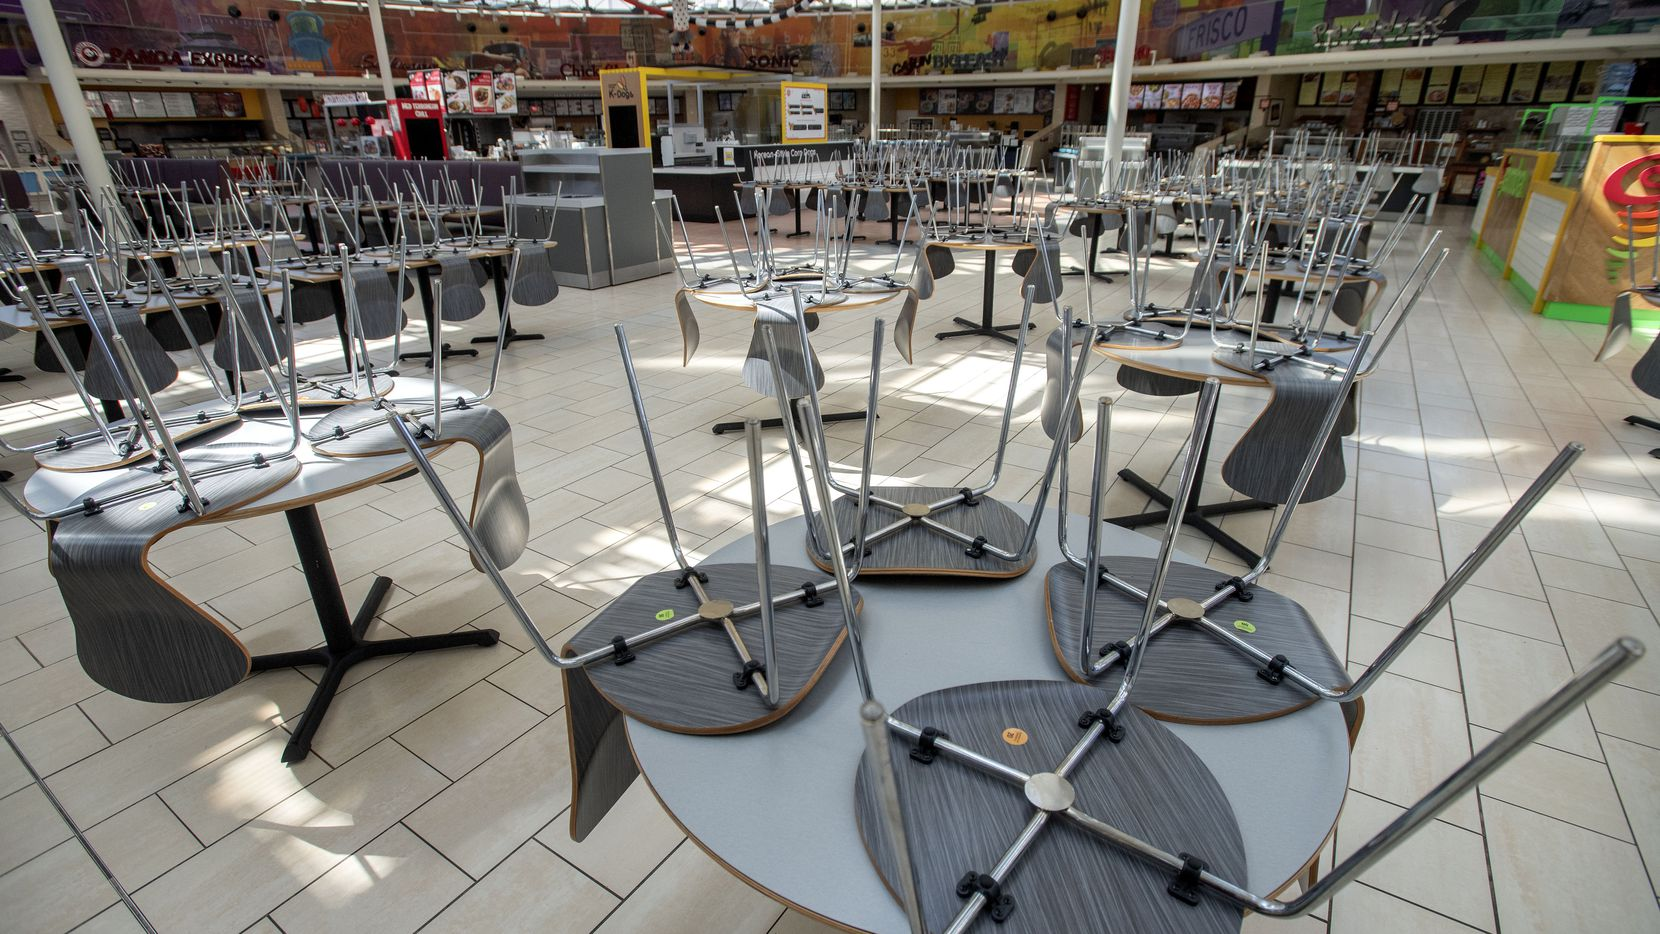 Gov. Greg Abbott on Tuesday gave shopping malls, such as Stonebriar Mall in Frisco, the green light to reopen their food courts immediately. He urged that tables be limited to six diners and that diners maintain a six foot distance from other patrons.